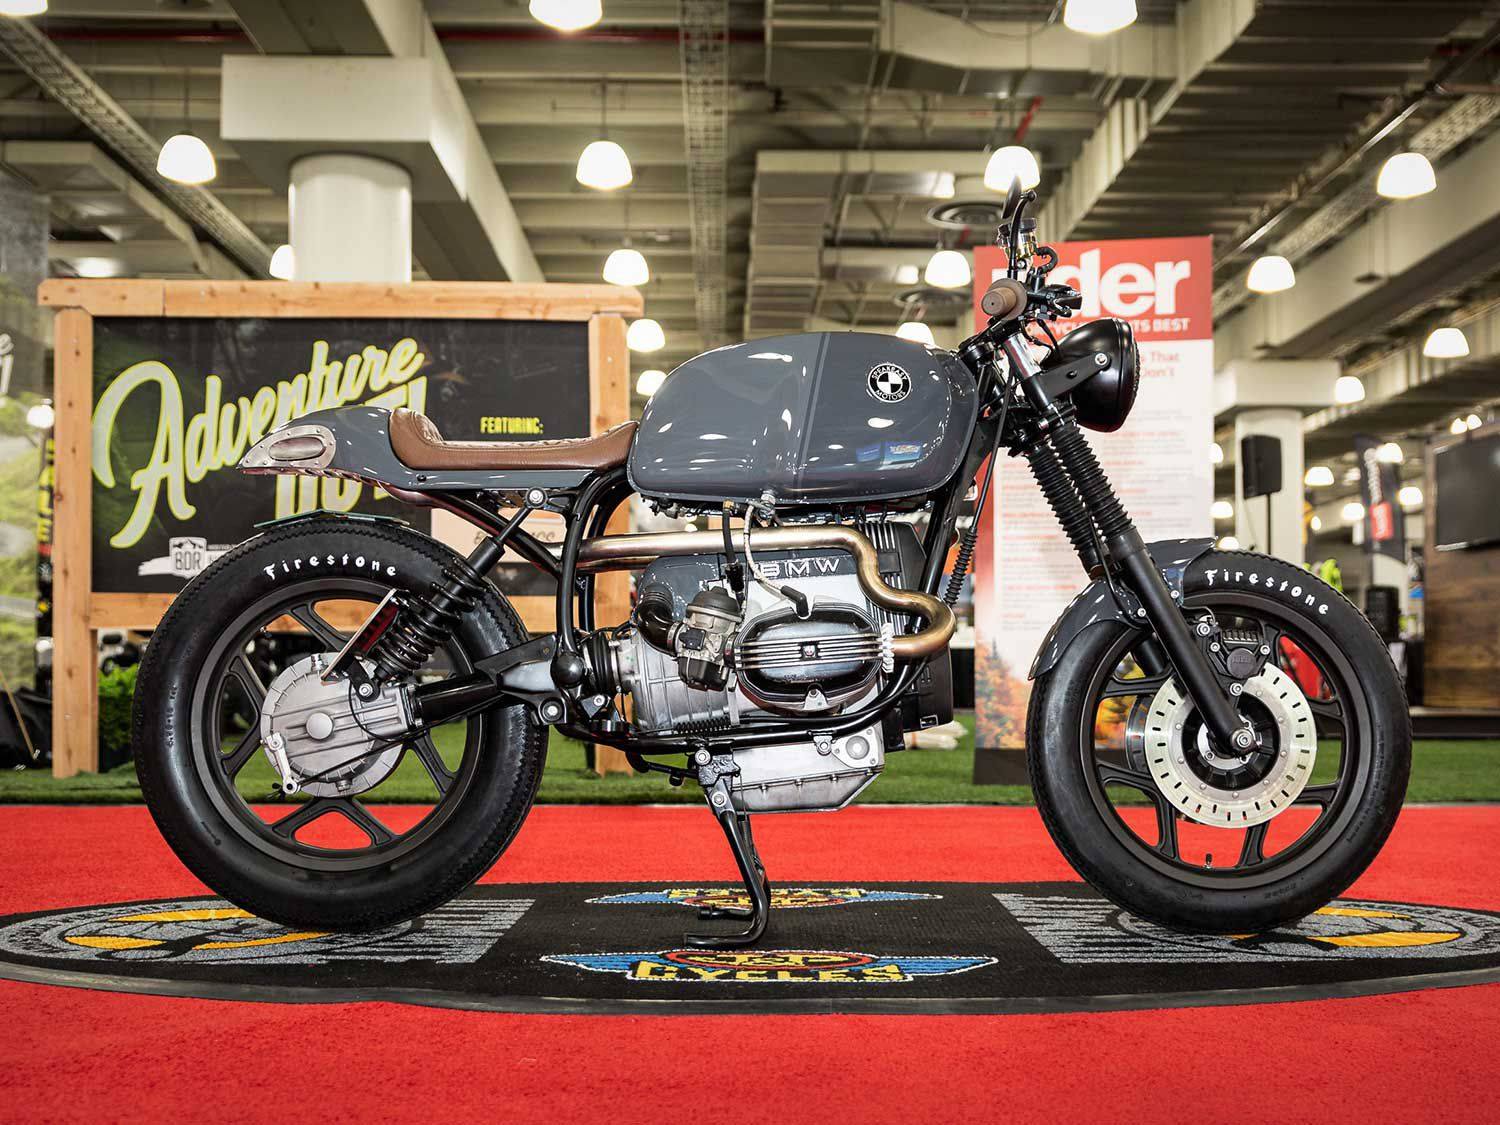 New York-based Evan Favaro of Speakeasy Motors grabbed first place in Custom Classic with a 1991 BMW R100RT café racer custom packing a stainless steel exhaust and a handmade custom tailsection, stripped frame, and more.